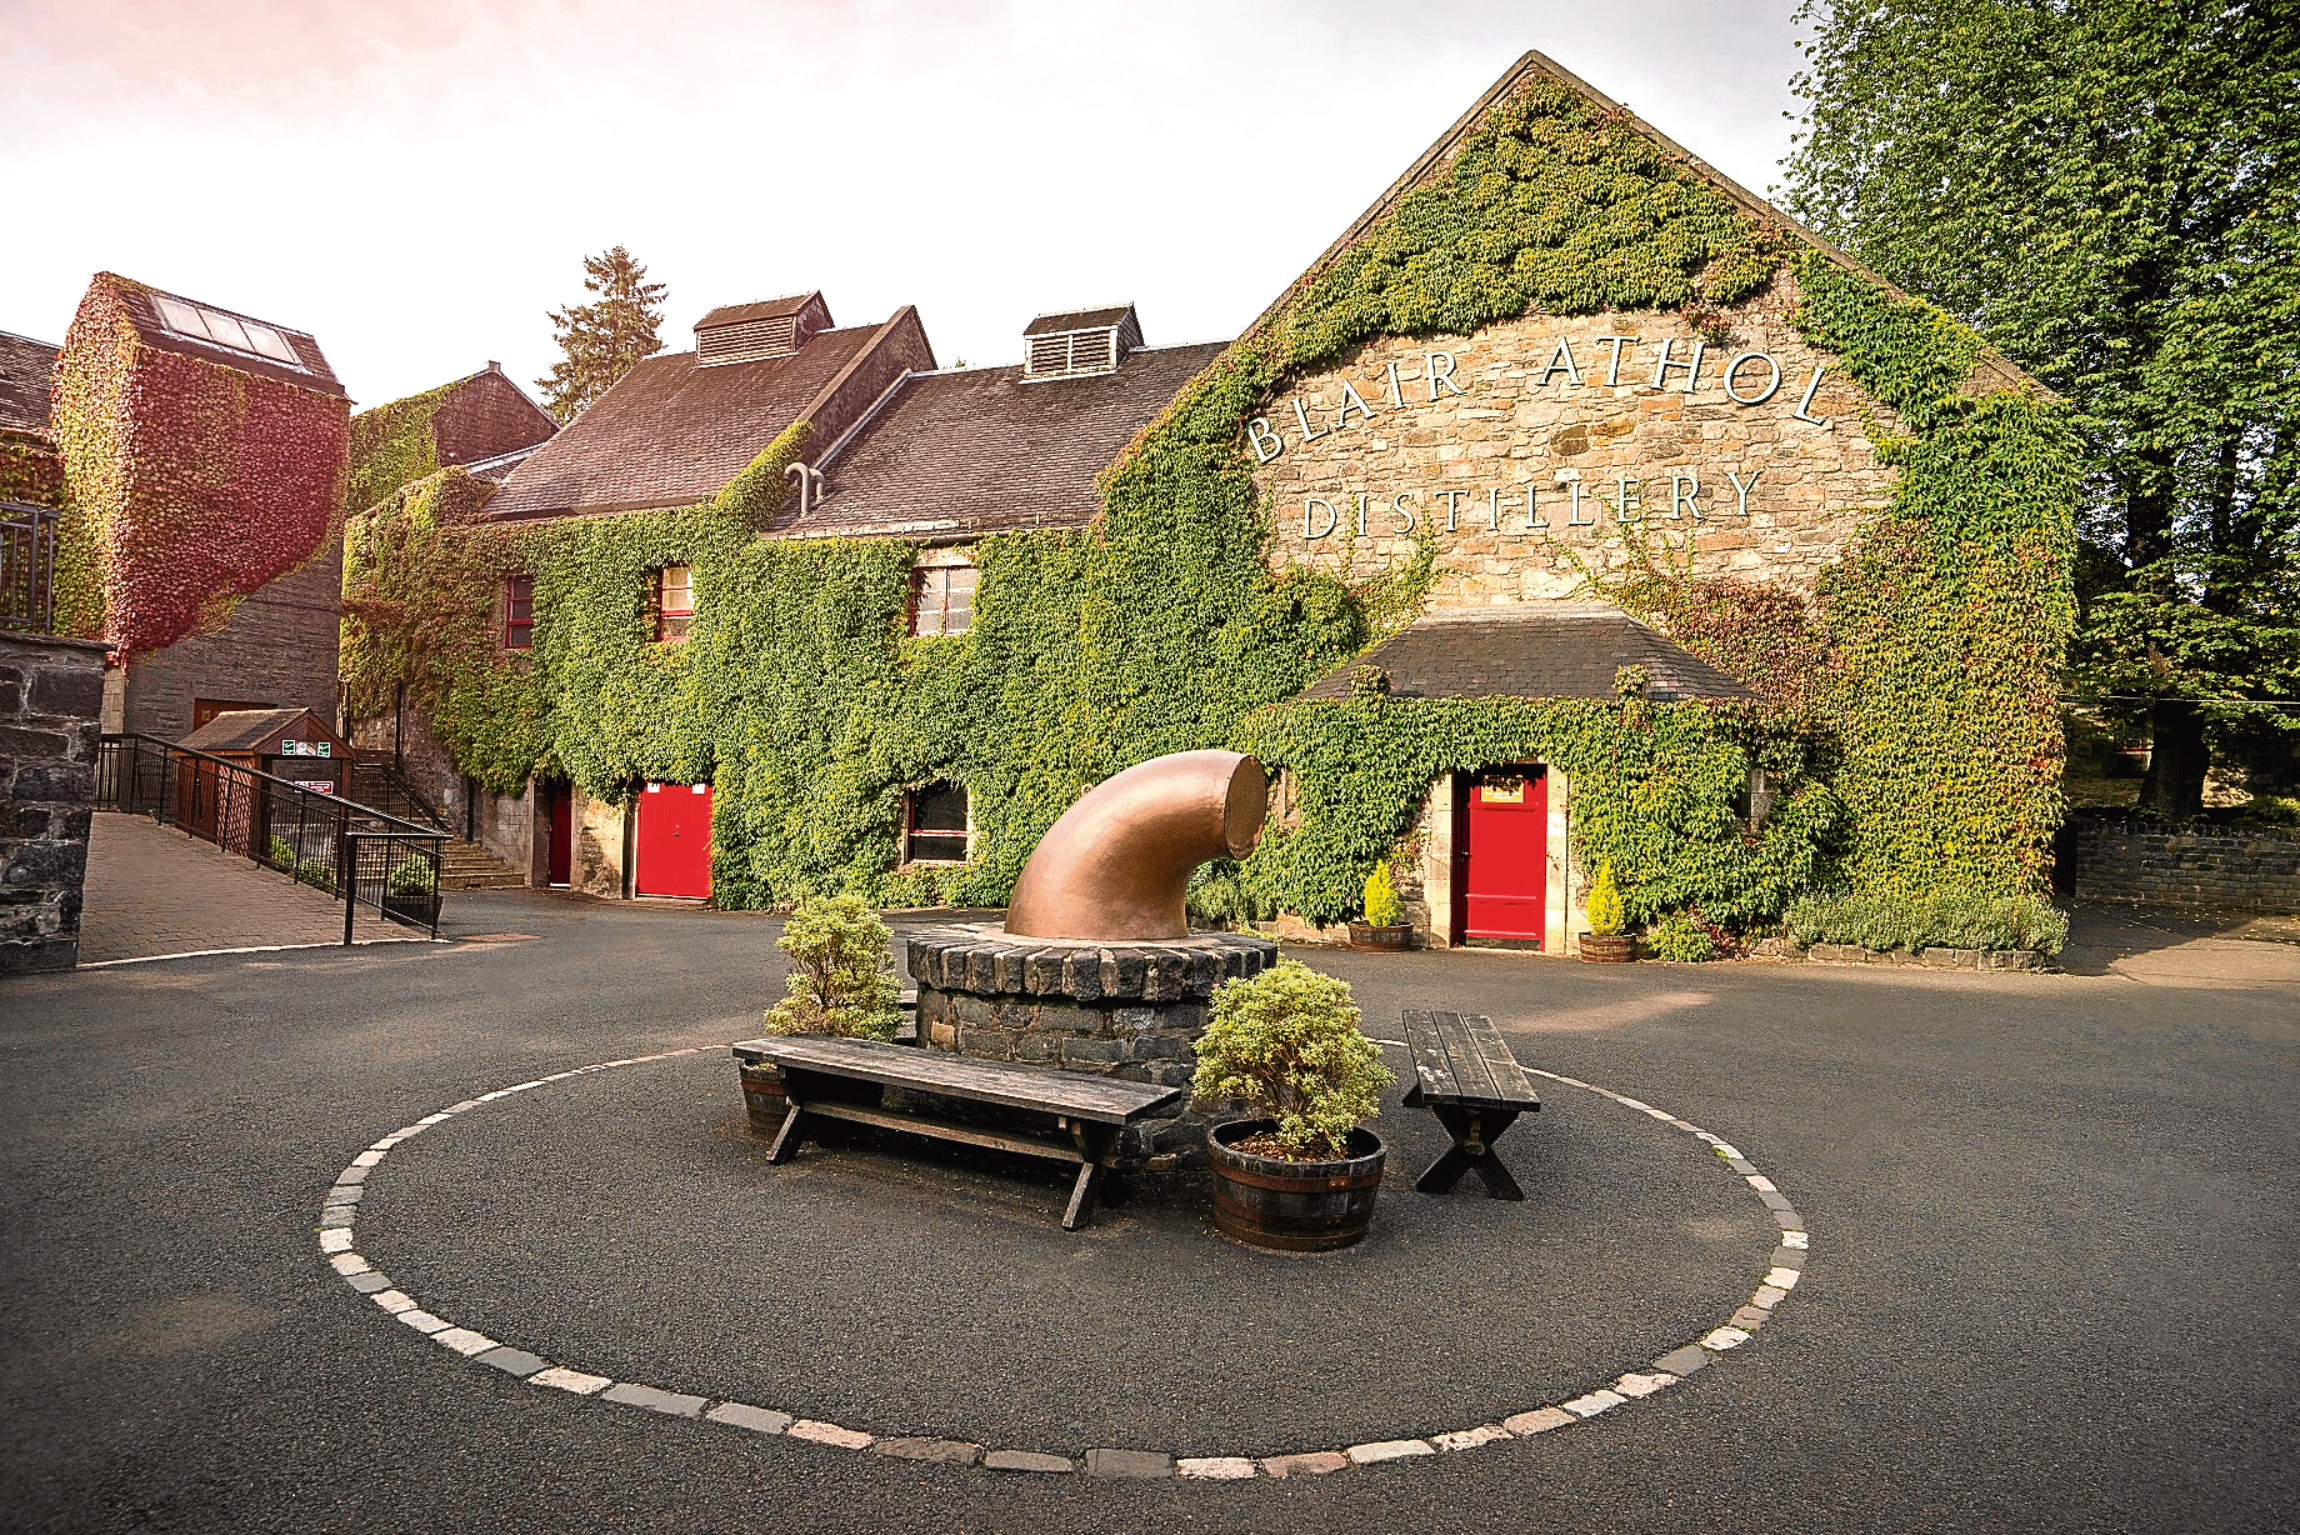 Blair Athol distillery at Pitlochry will be among those upgraded under Diageos whisky visitor experience plans.